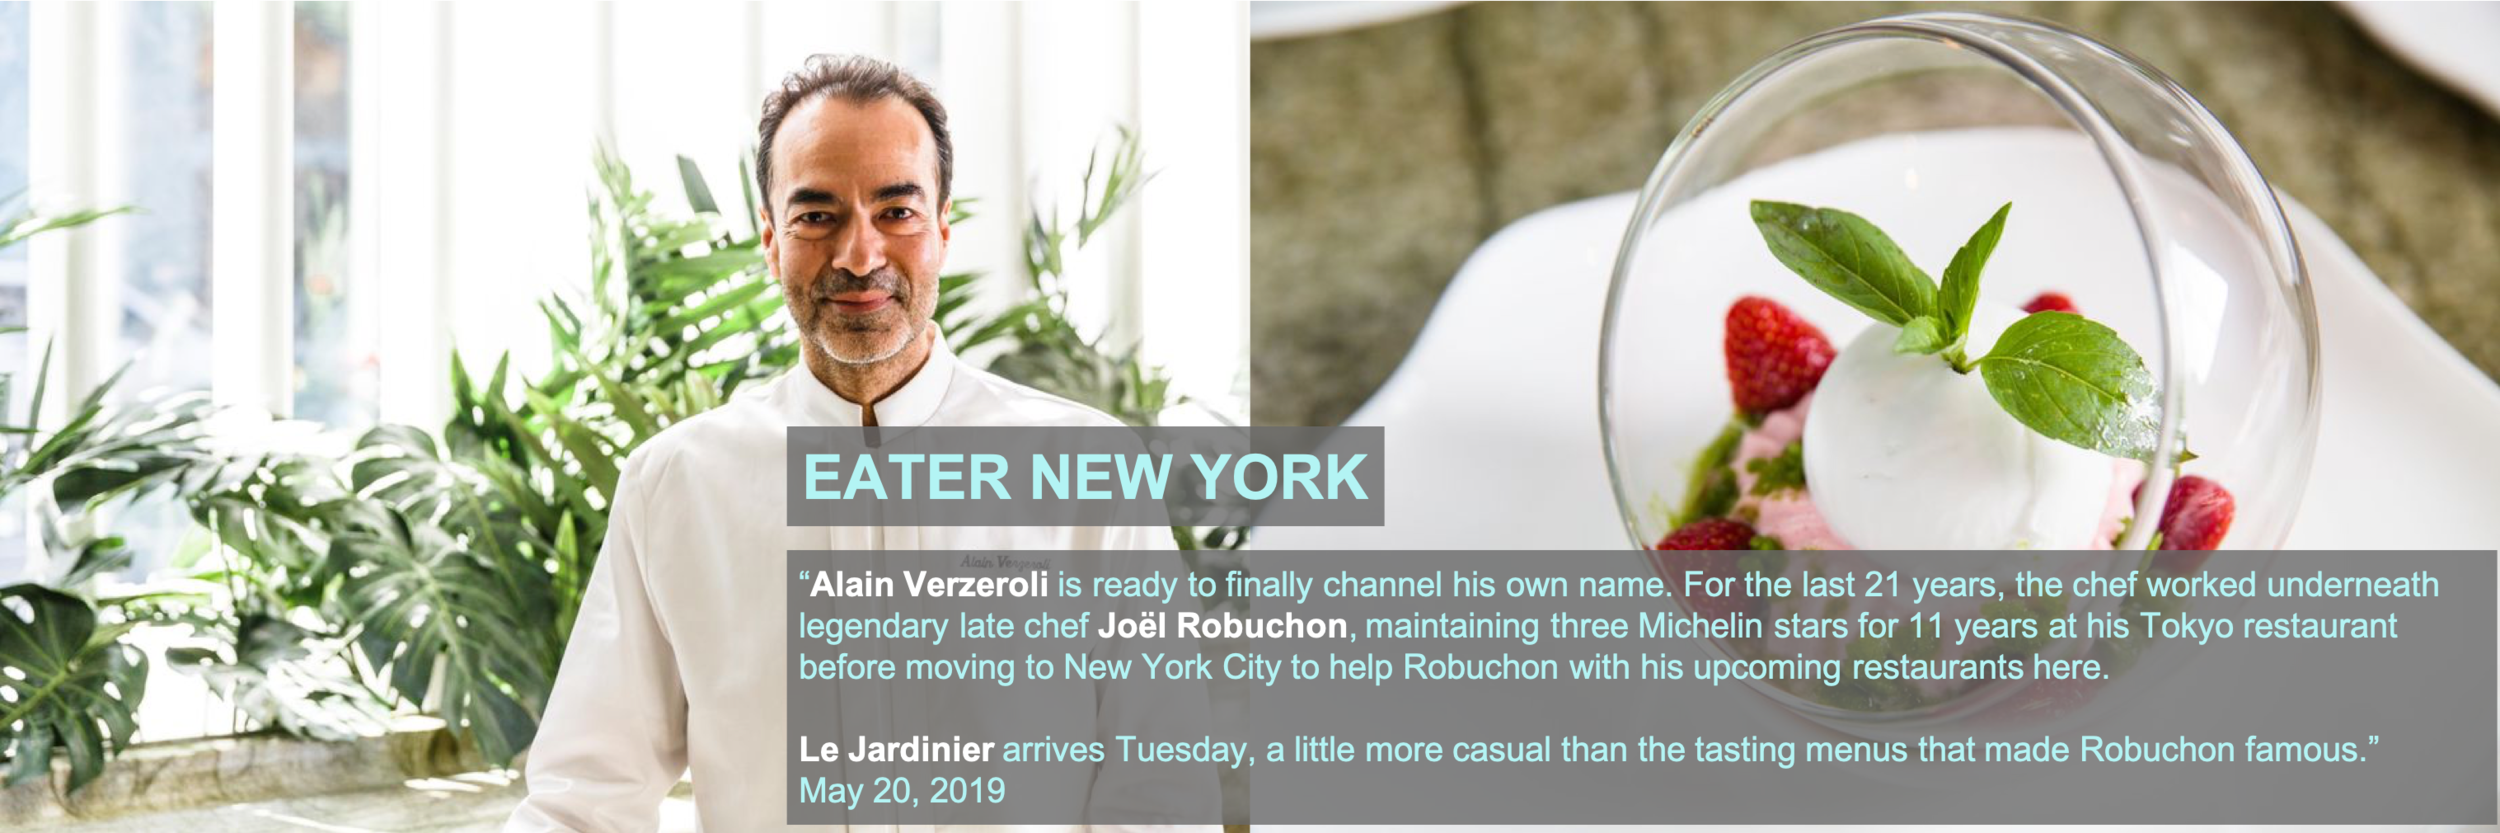 Eater New York May 20 2019 Le Jardinier.png